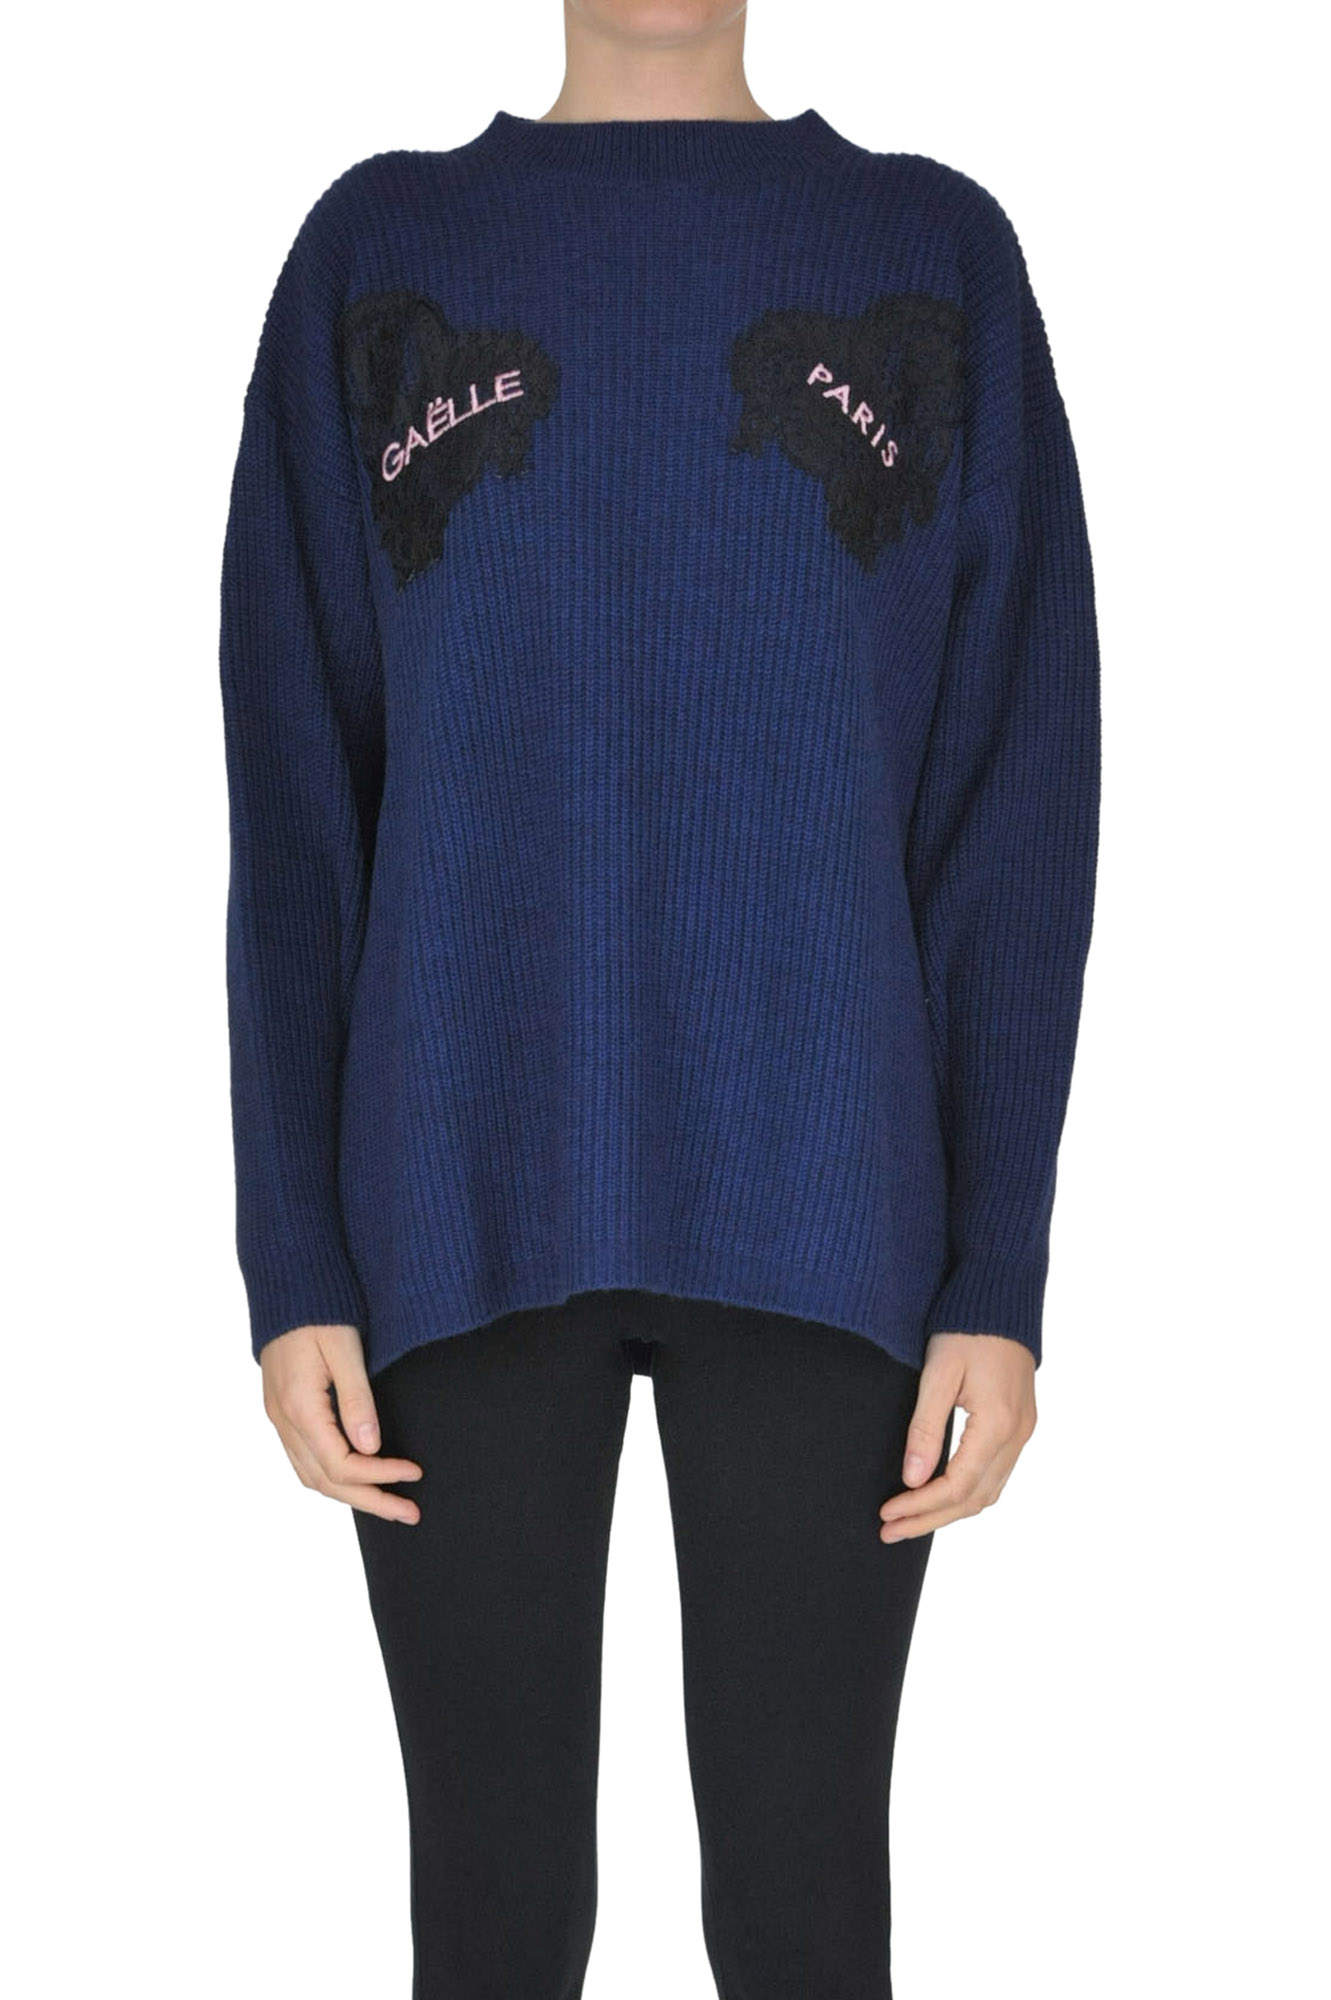 GAELLE PARIS Ribbed Knit Pullover in Navy Blue